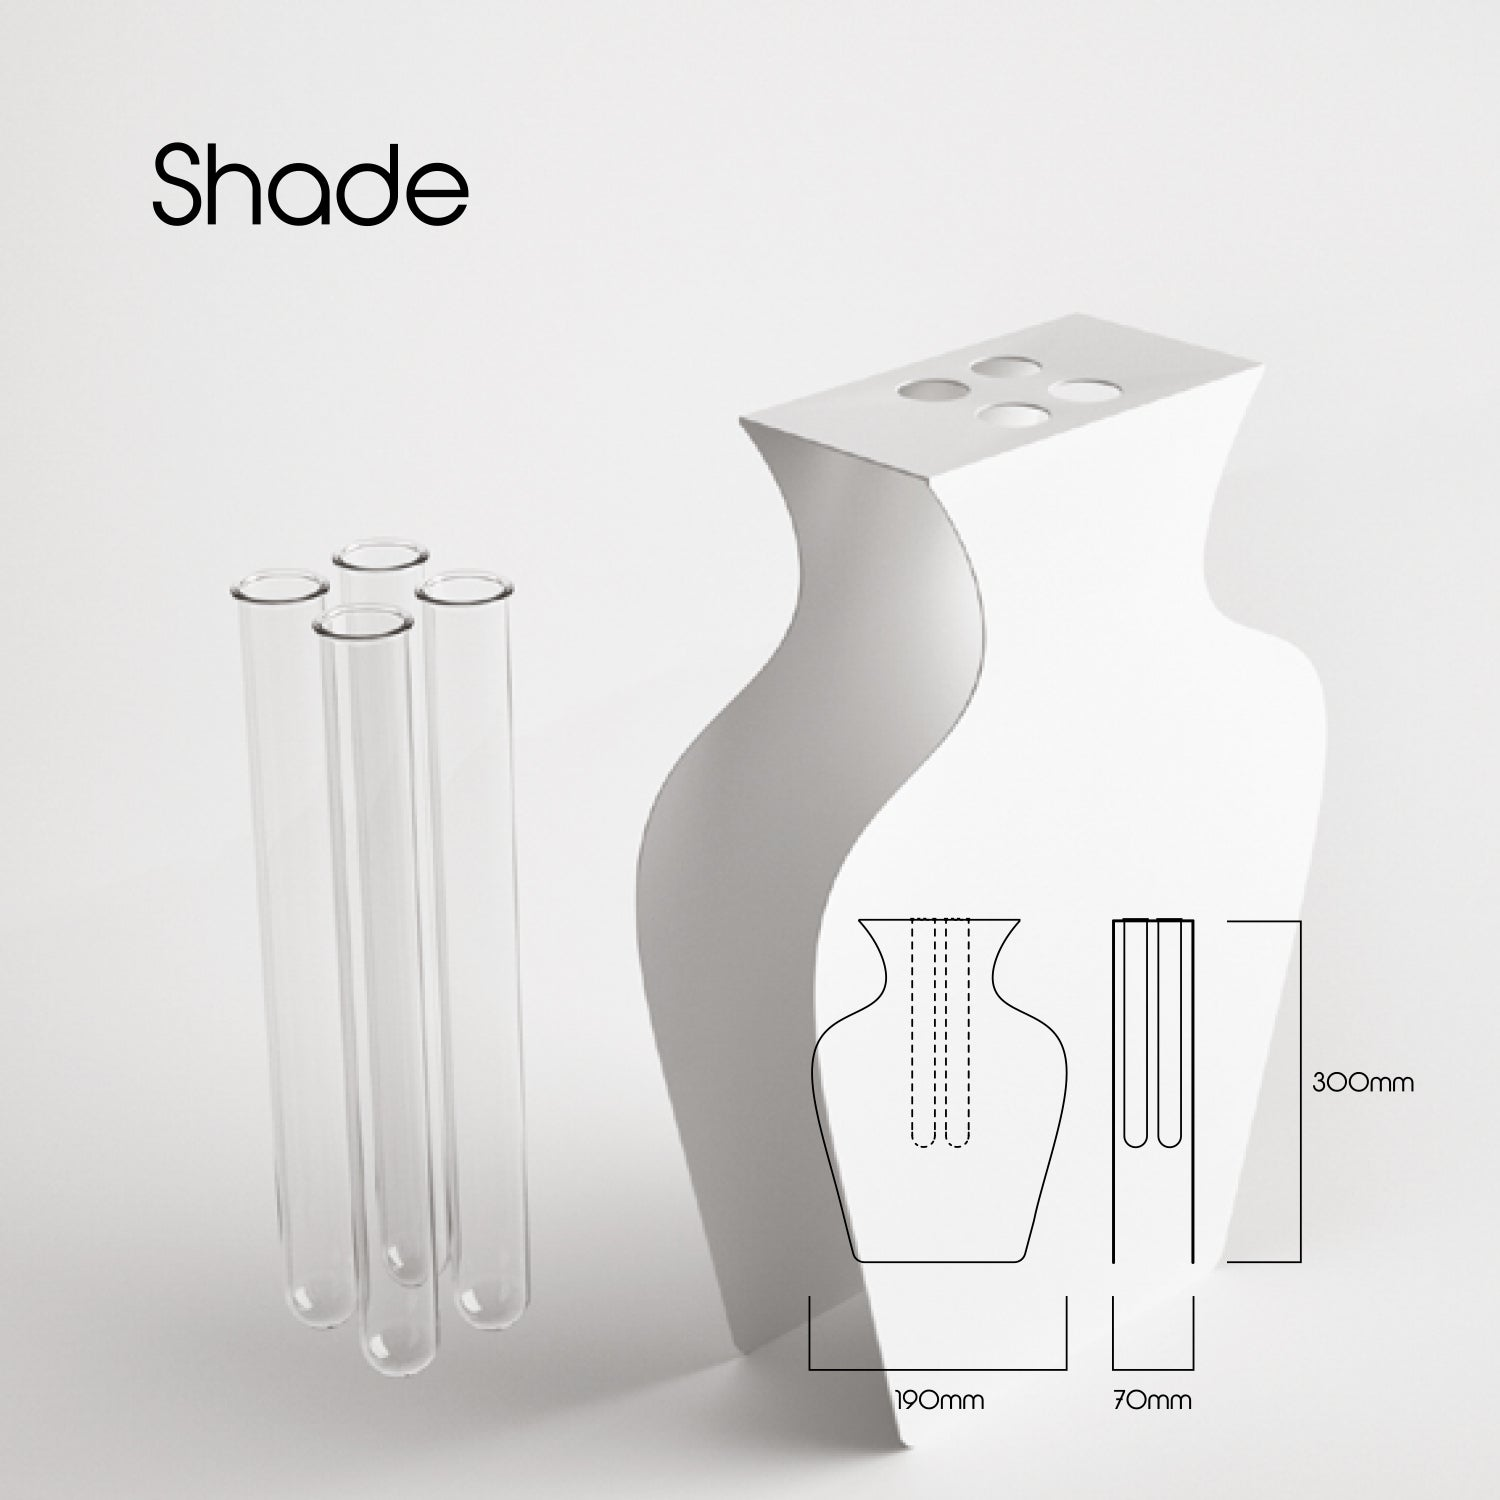 Shade-Mini Shade NATURE AIR 002